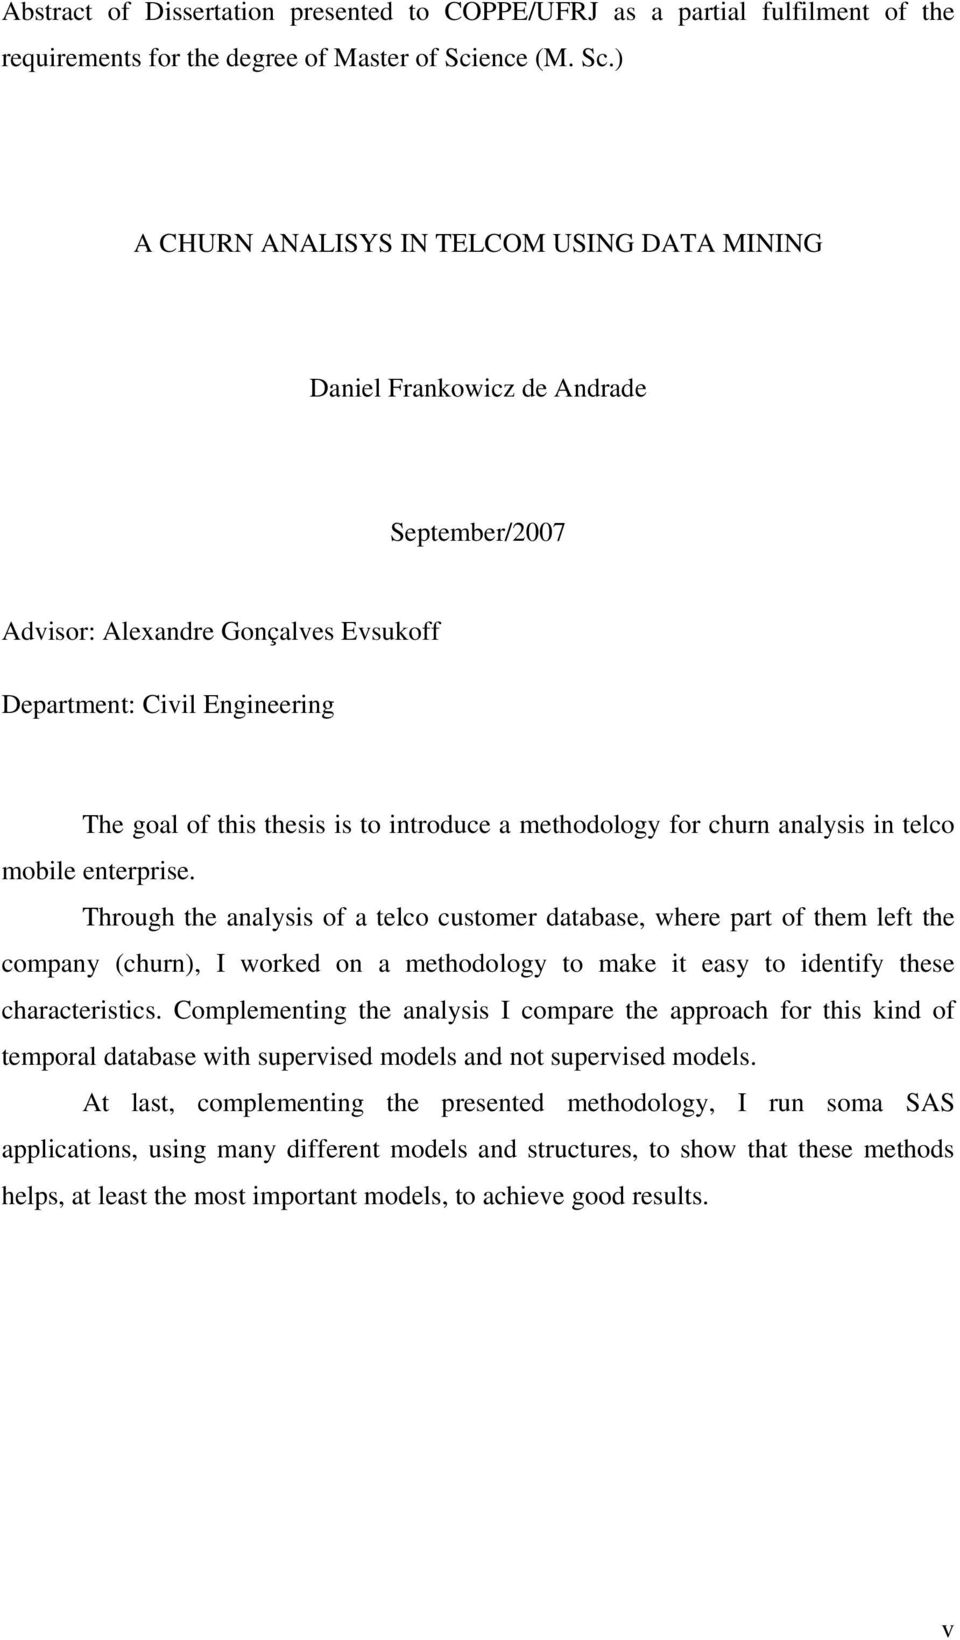 ) A CHURN ANALISYS IN TELCOM USING DATA MINING Daniel Frankowicz de Andrade September/2007 Advisor: Alexandre Gonçalves Evsukoff Department: Civil Engineering The goal of this thesis is to introduce